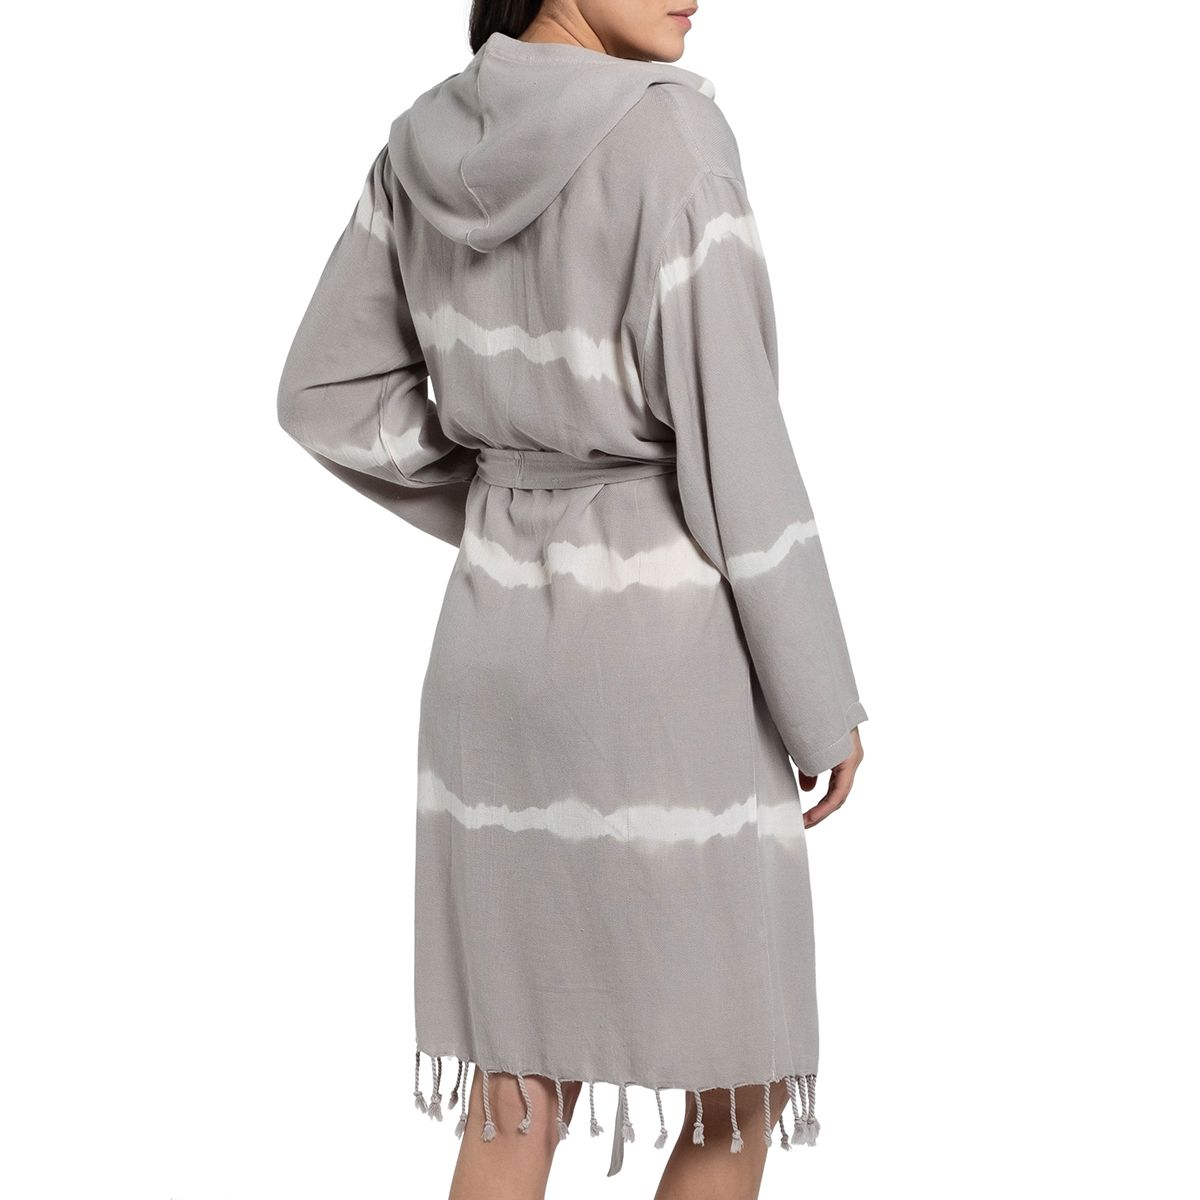 Bathrobe Tie Dye with hood - Taupe Base